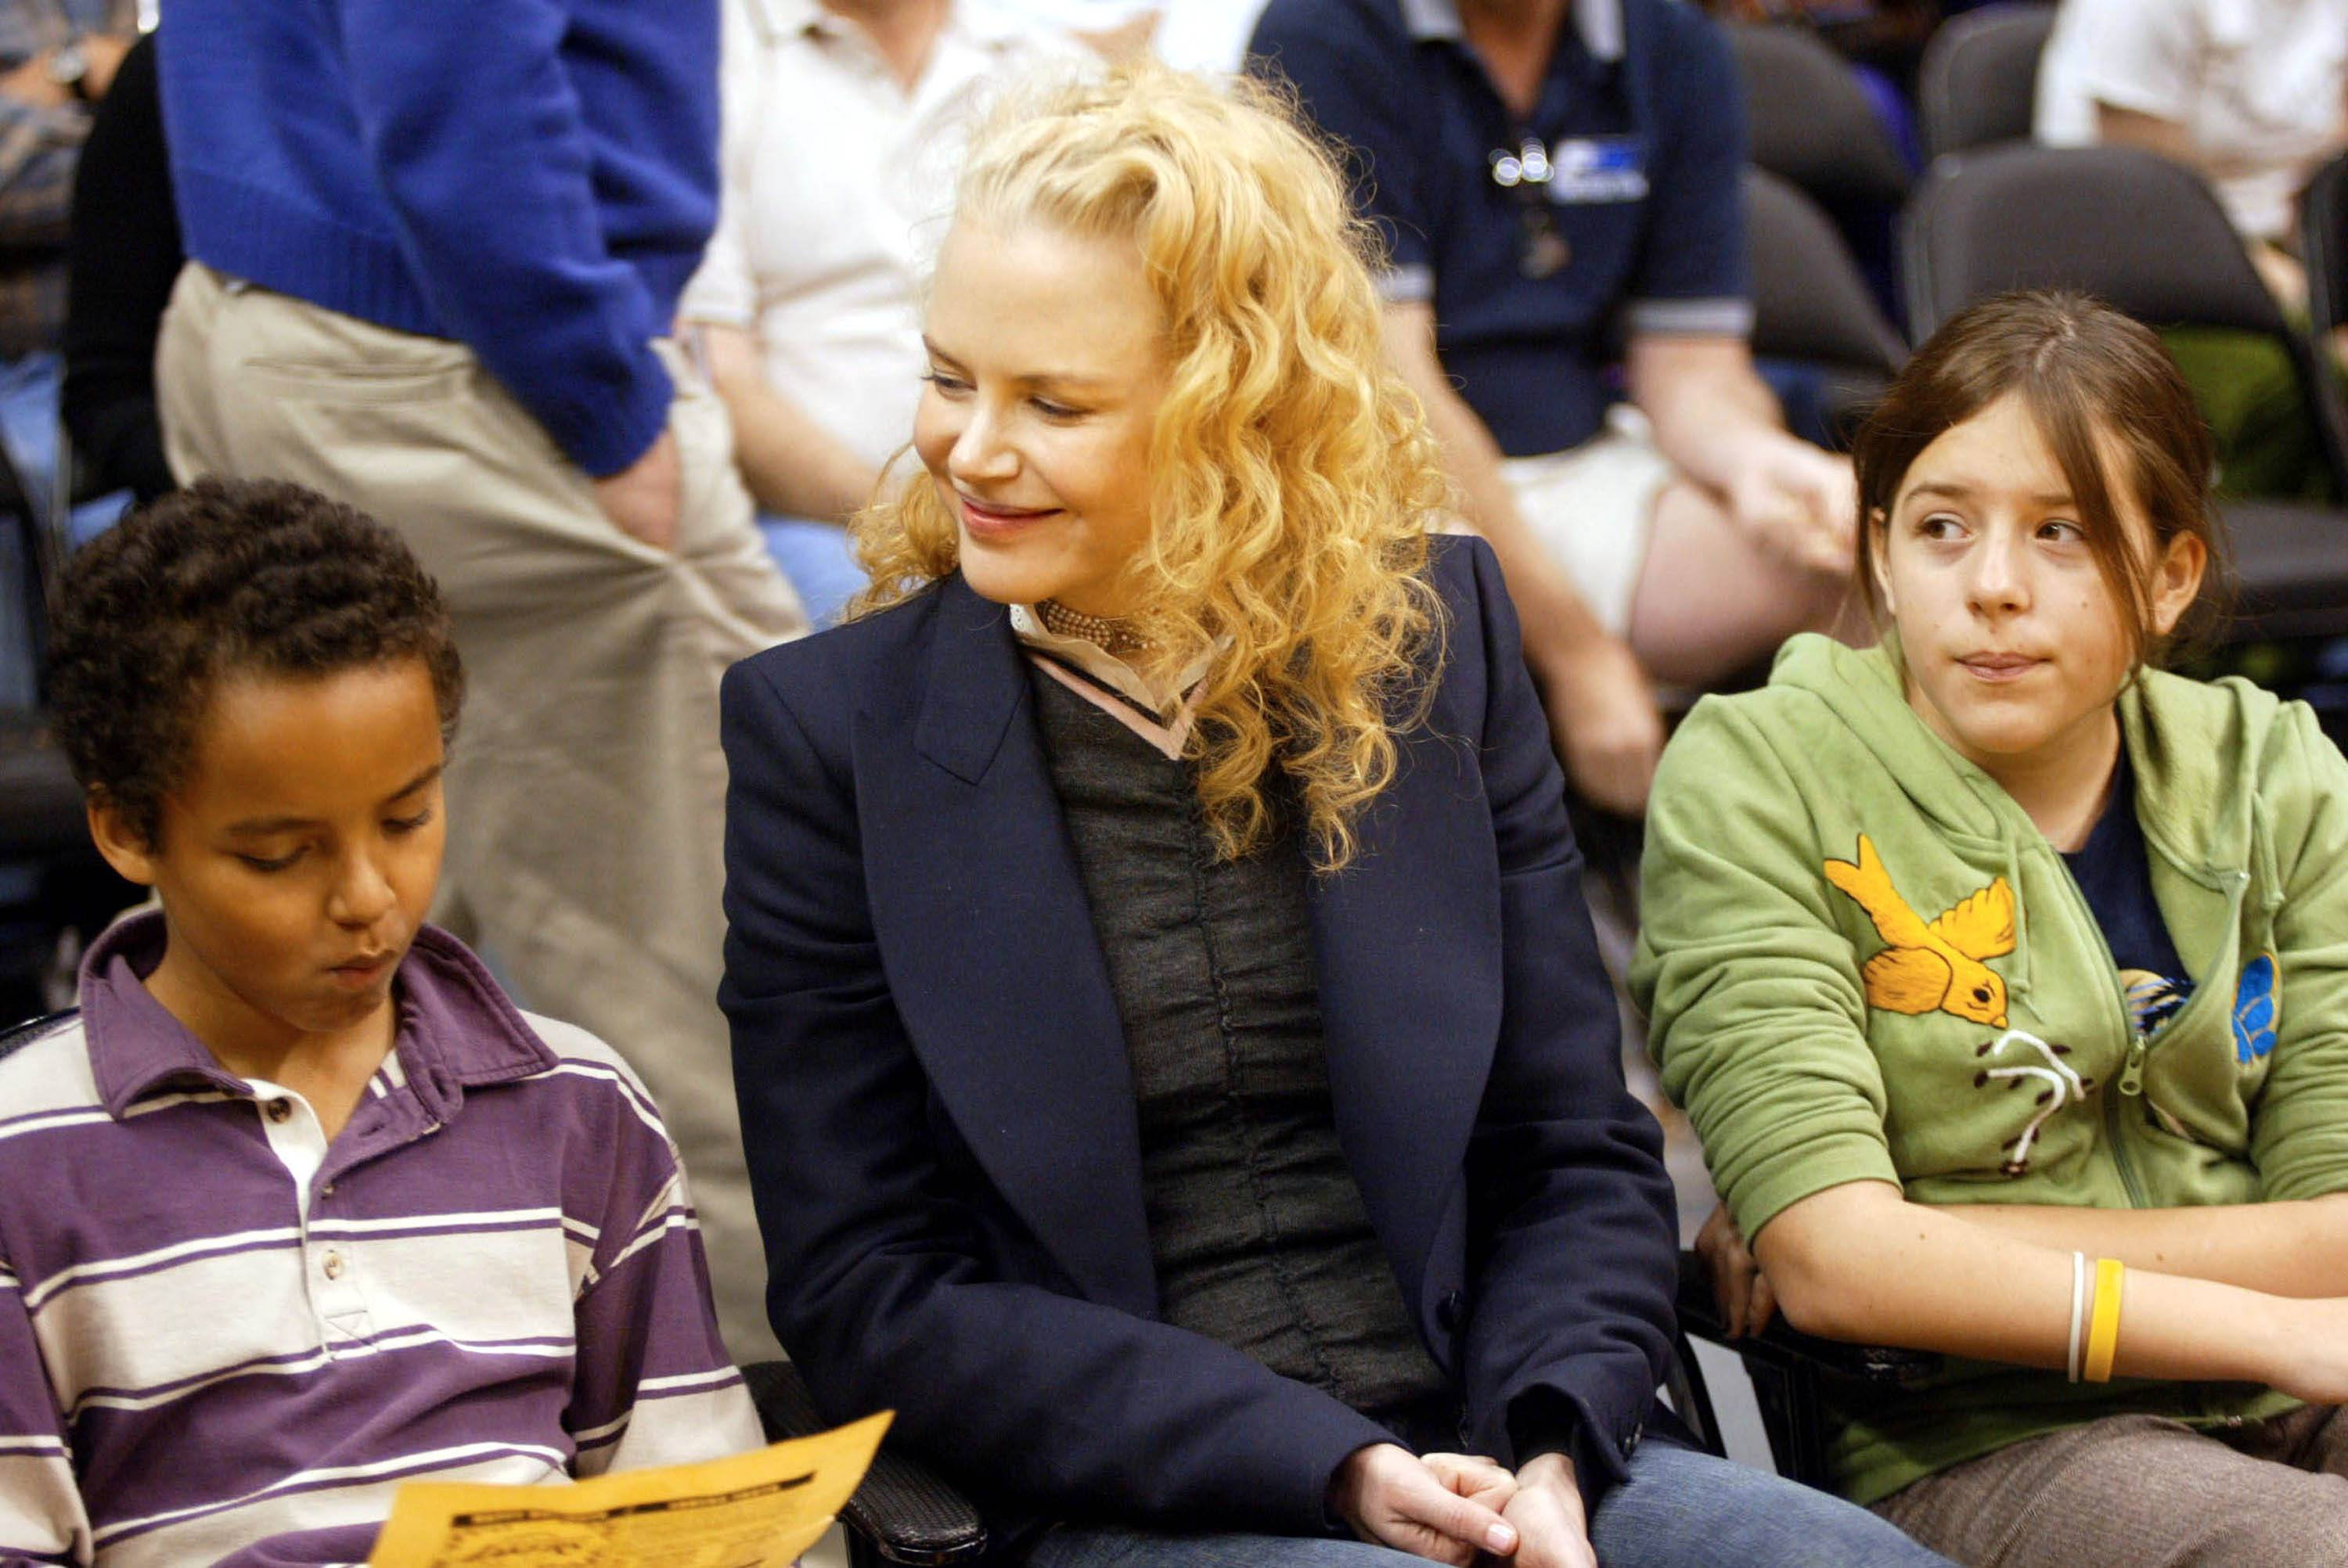 ctress Nicole Kidman and her children Connor (L) and Isabella (R) attend a game between the Los Angeles Lakers and the Miami Heat at the Staples Center December 25, 2004